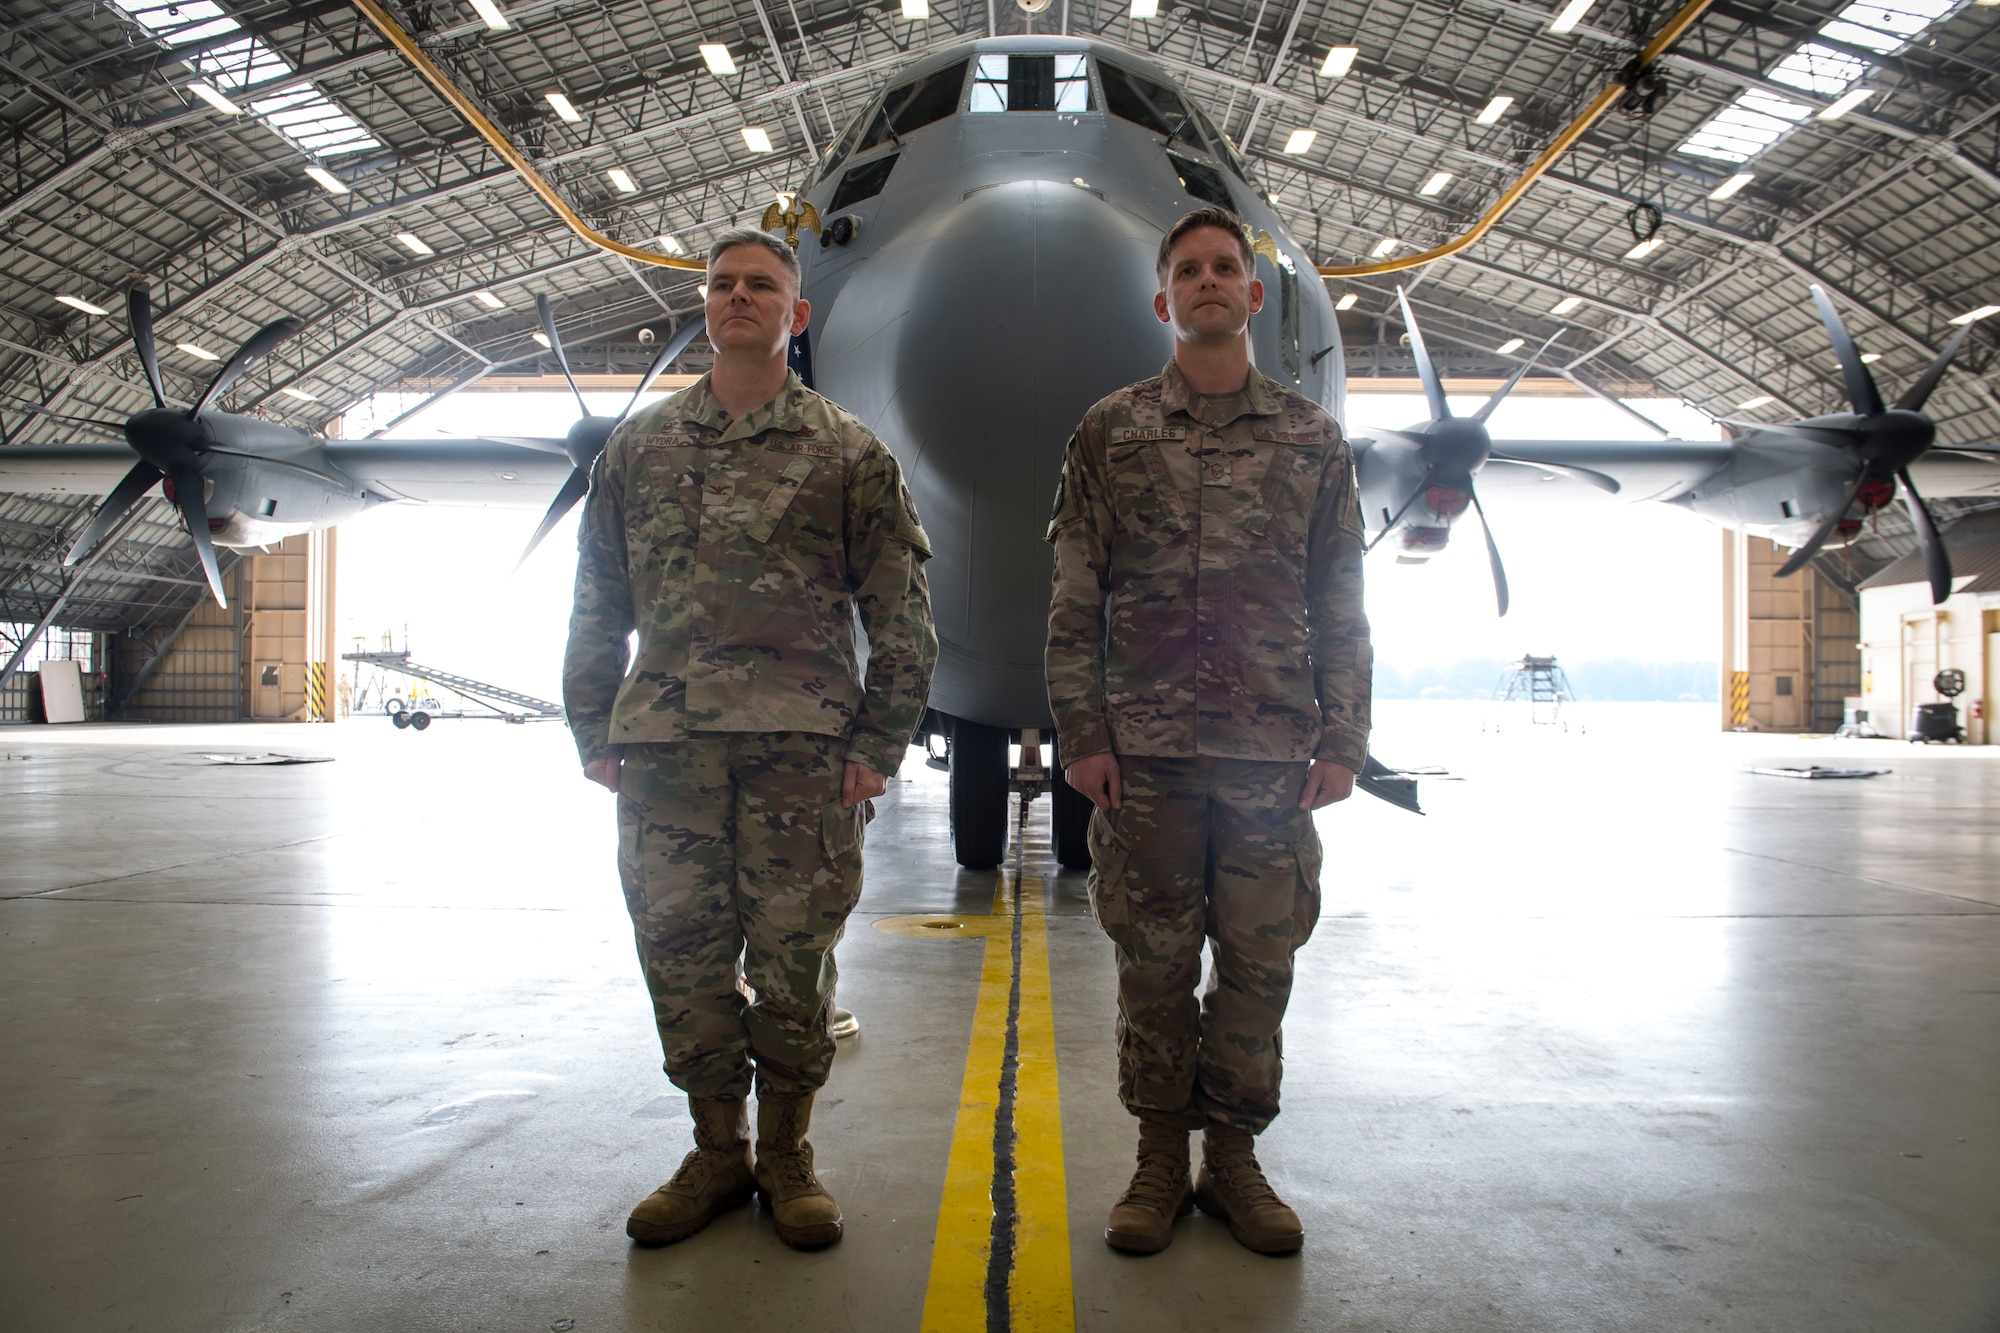 Col. Todd Wydra, 374th Maintenance Group commander (left), and Master Sgt. James Charles, 374th Aircraft Maintenance Squadron production superintendent, stand at attention